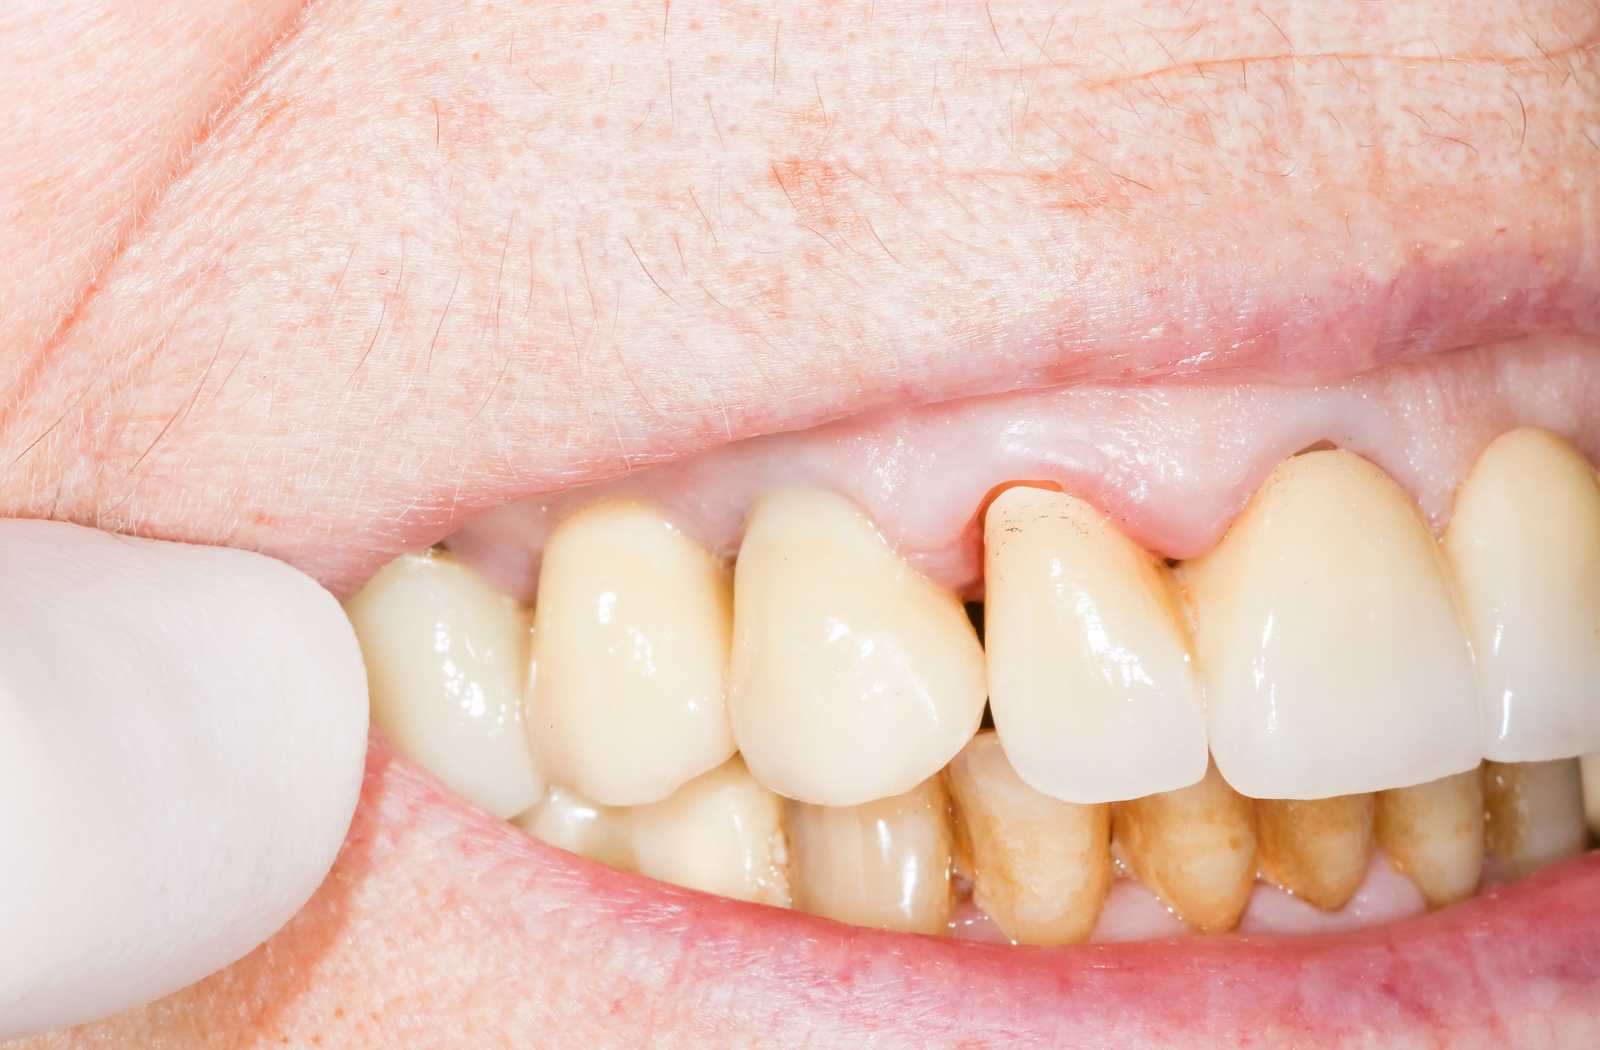 discoloured gums in closeup shot of elderly woman's mouth